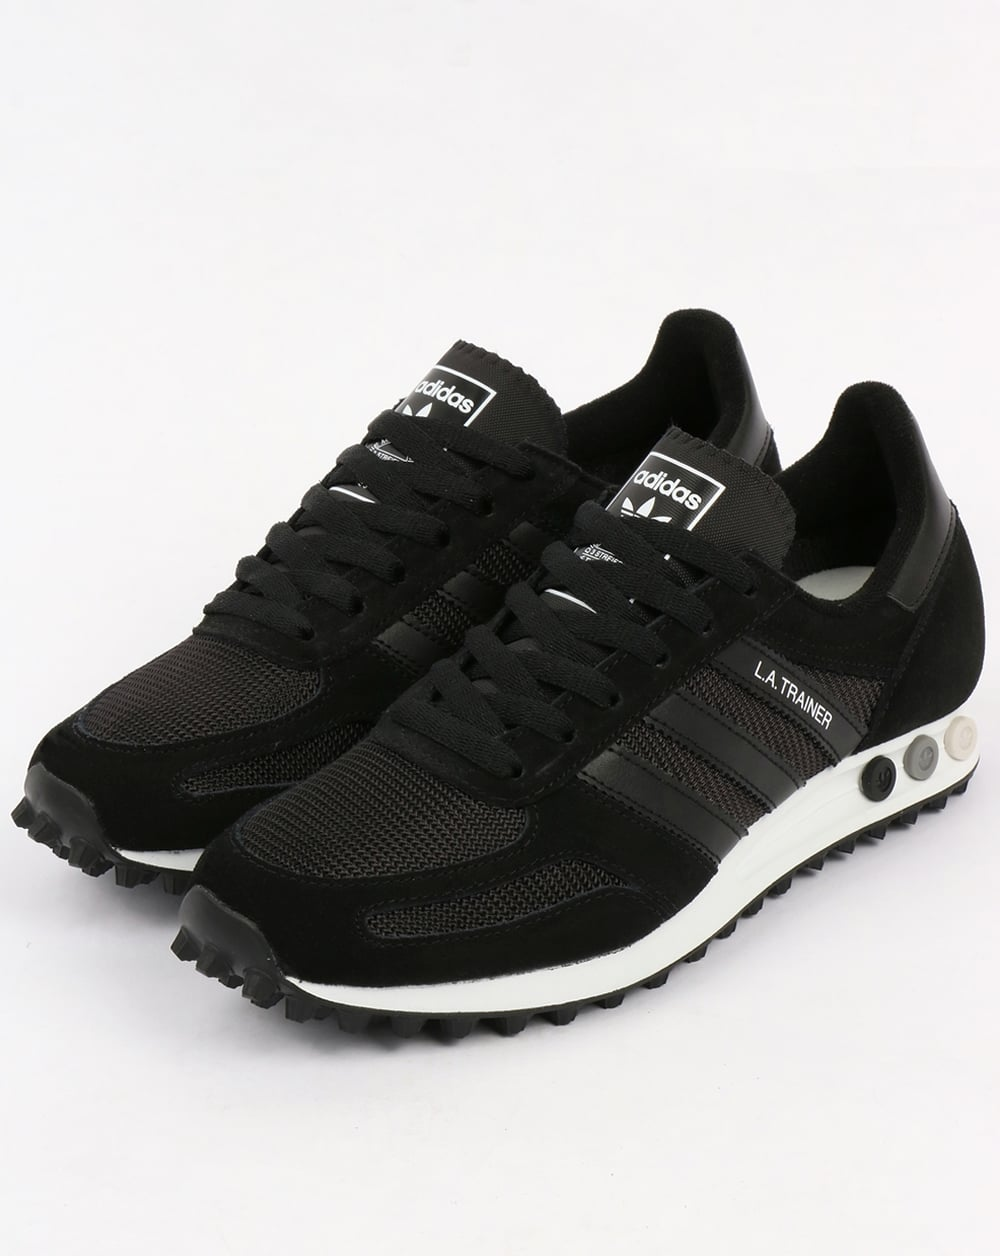 7e415cbf67cd7 Adidas La Trainer Og Black black white